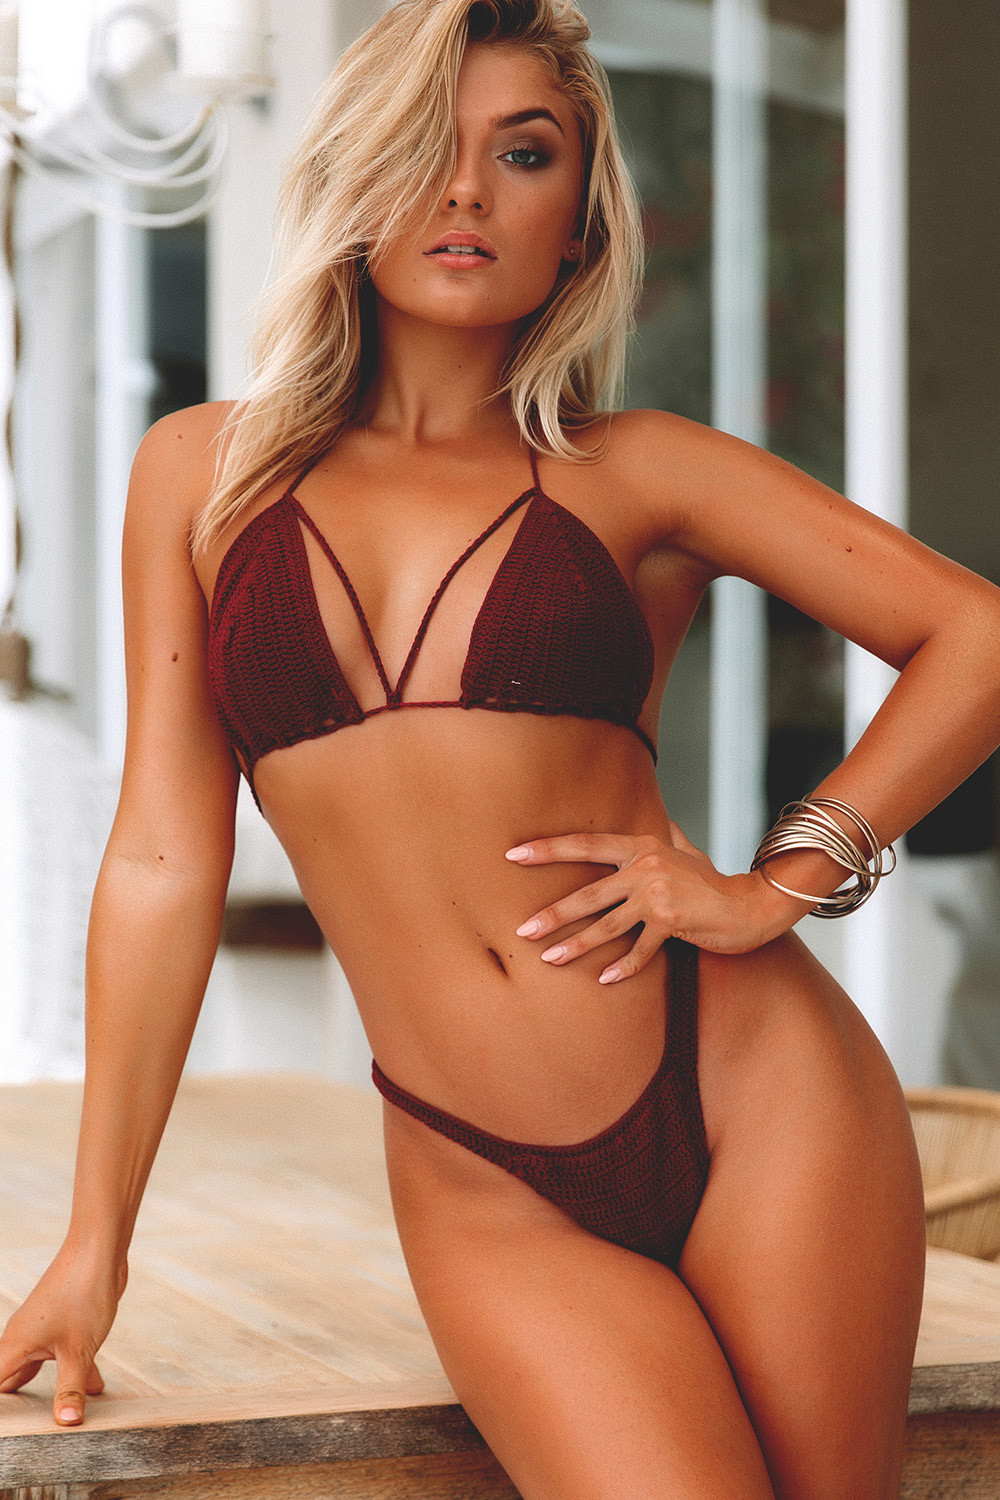 Burgundy Beach Rose Bikini Top Amp Rosemary Burgundy Bikini Bottoms